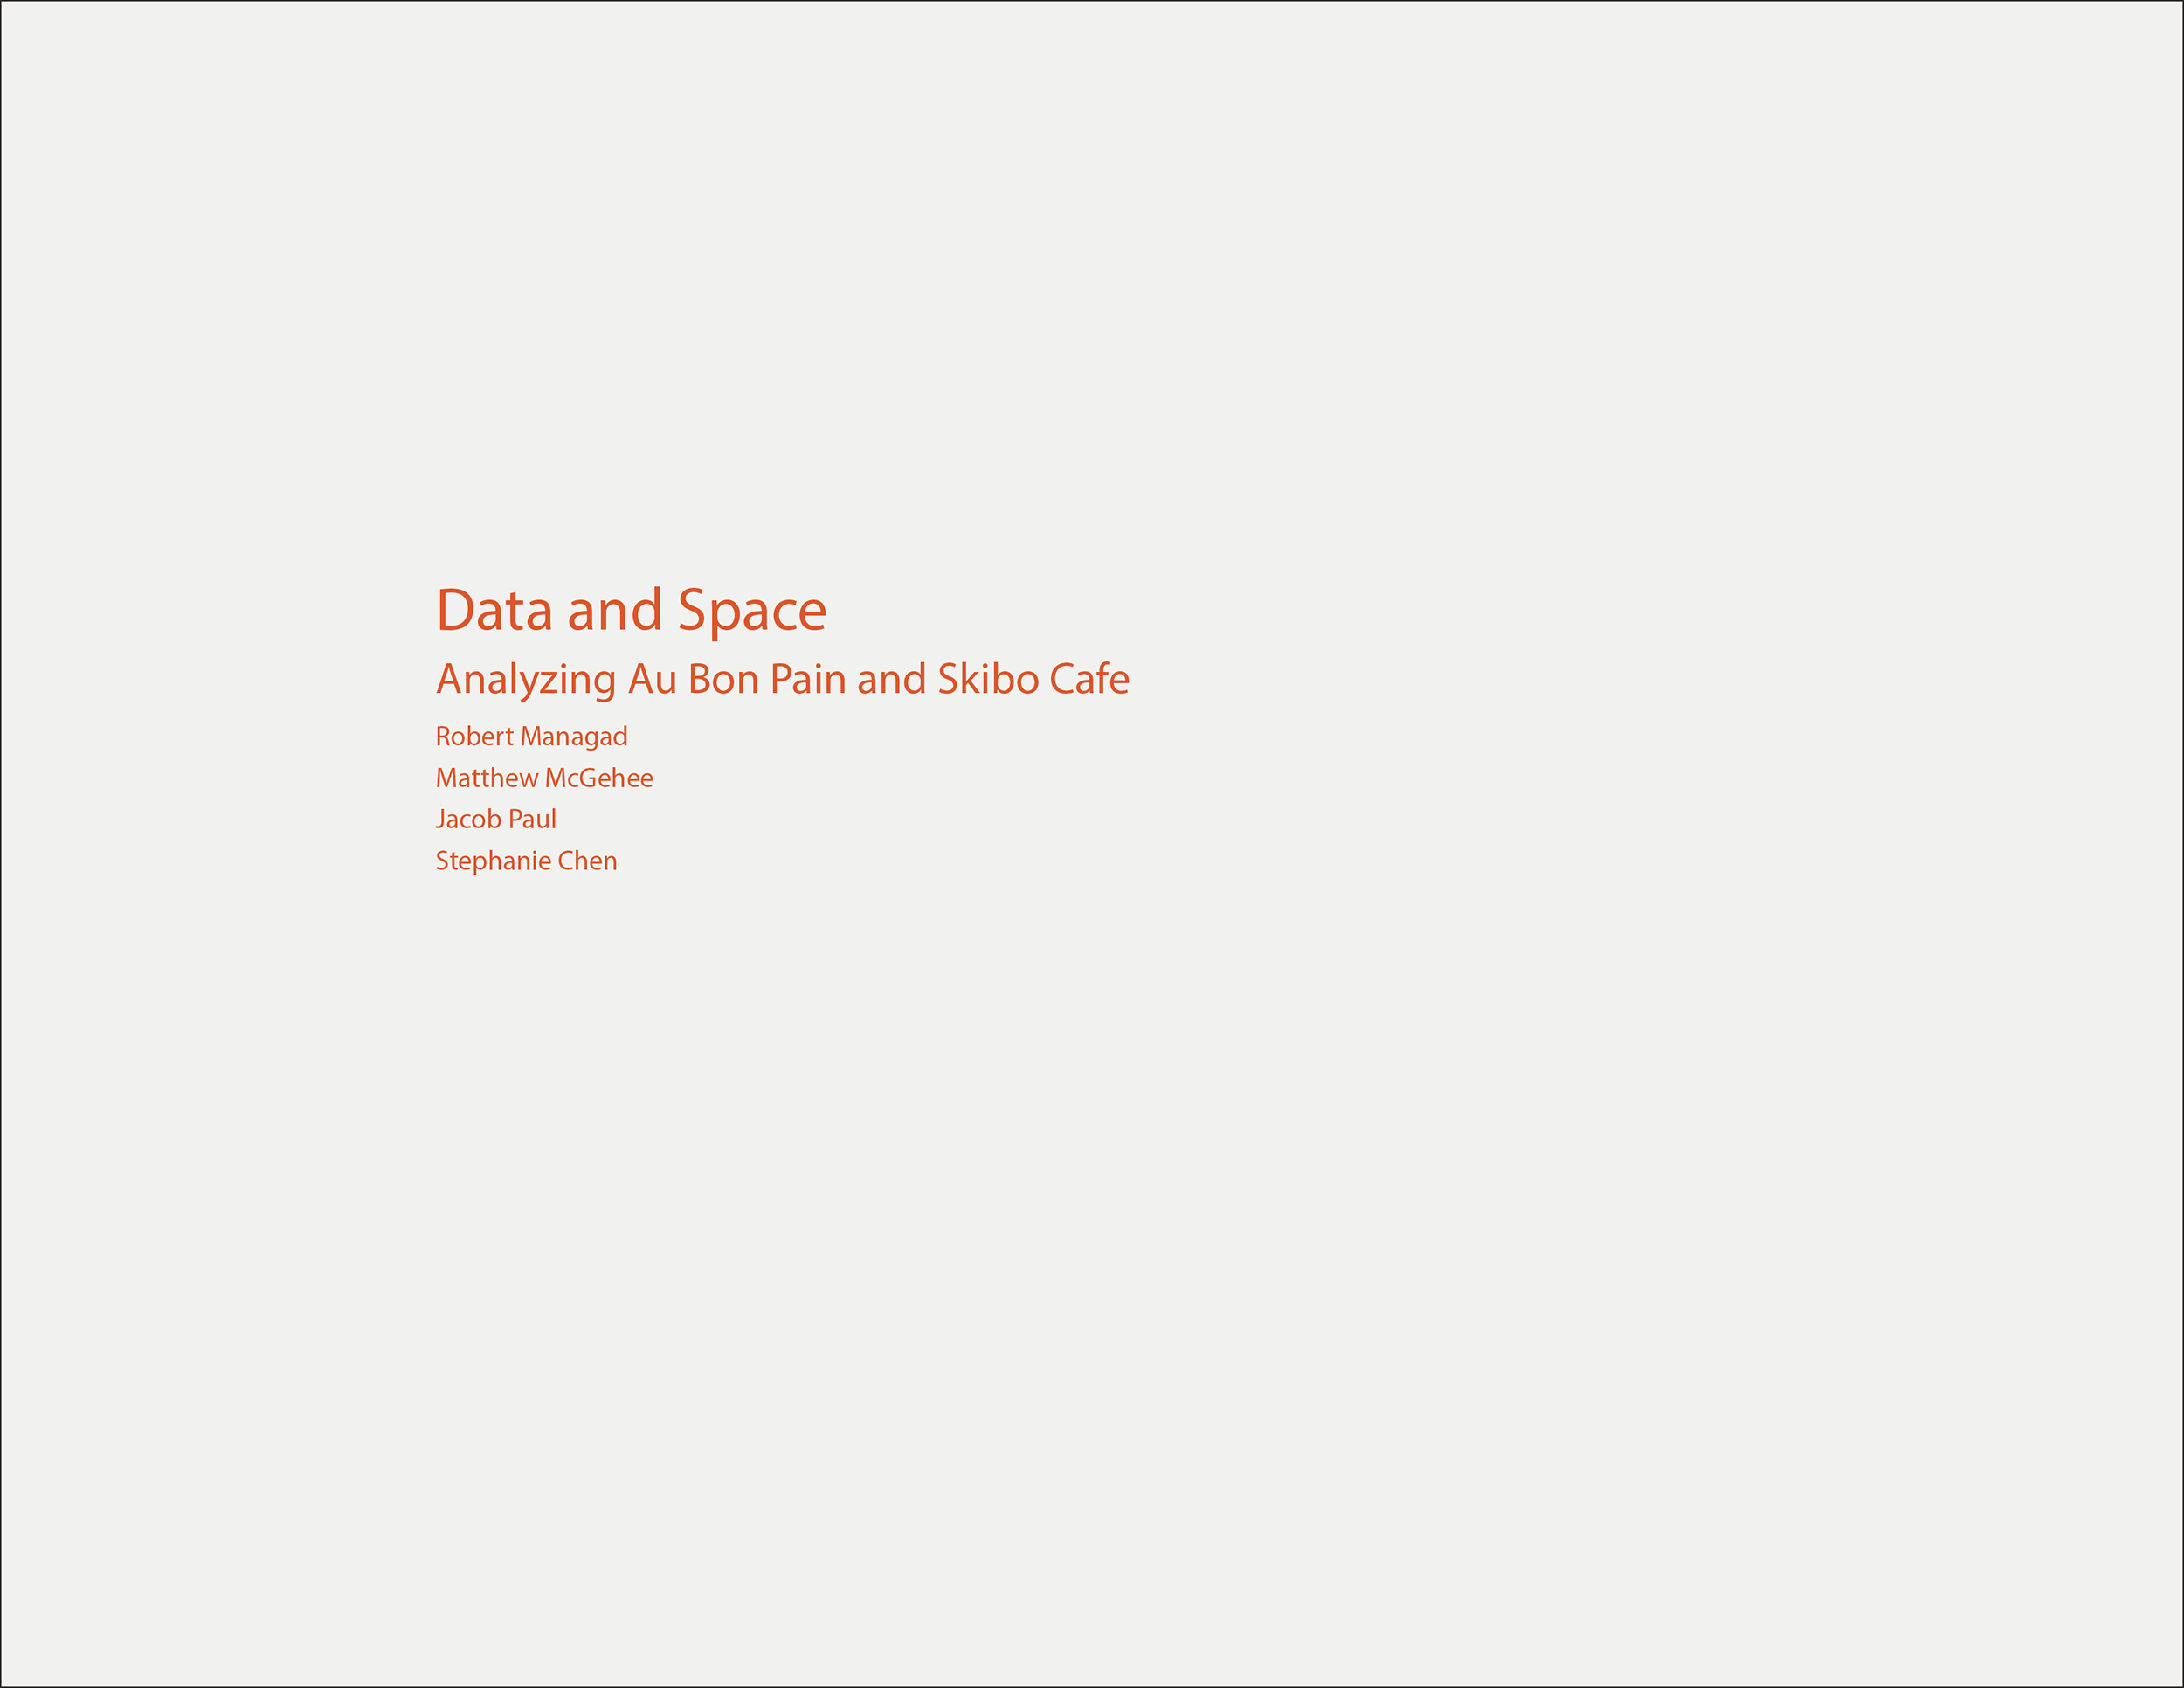 DATA AND SPACE FINAL-1.jpg